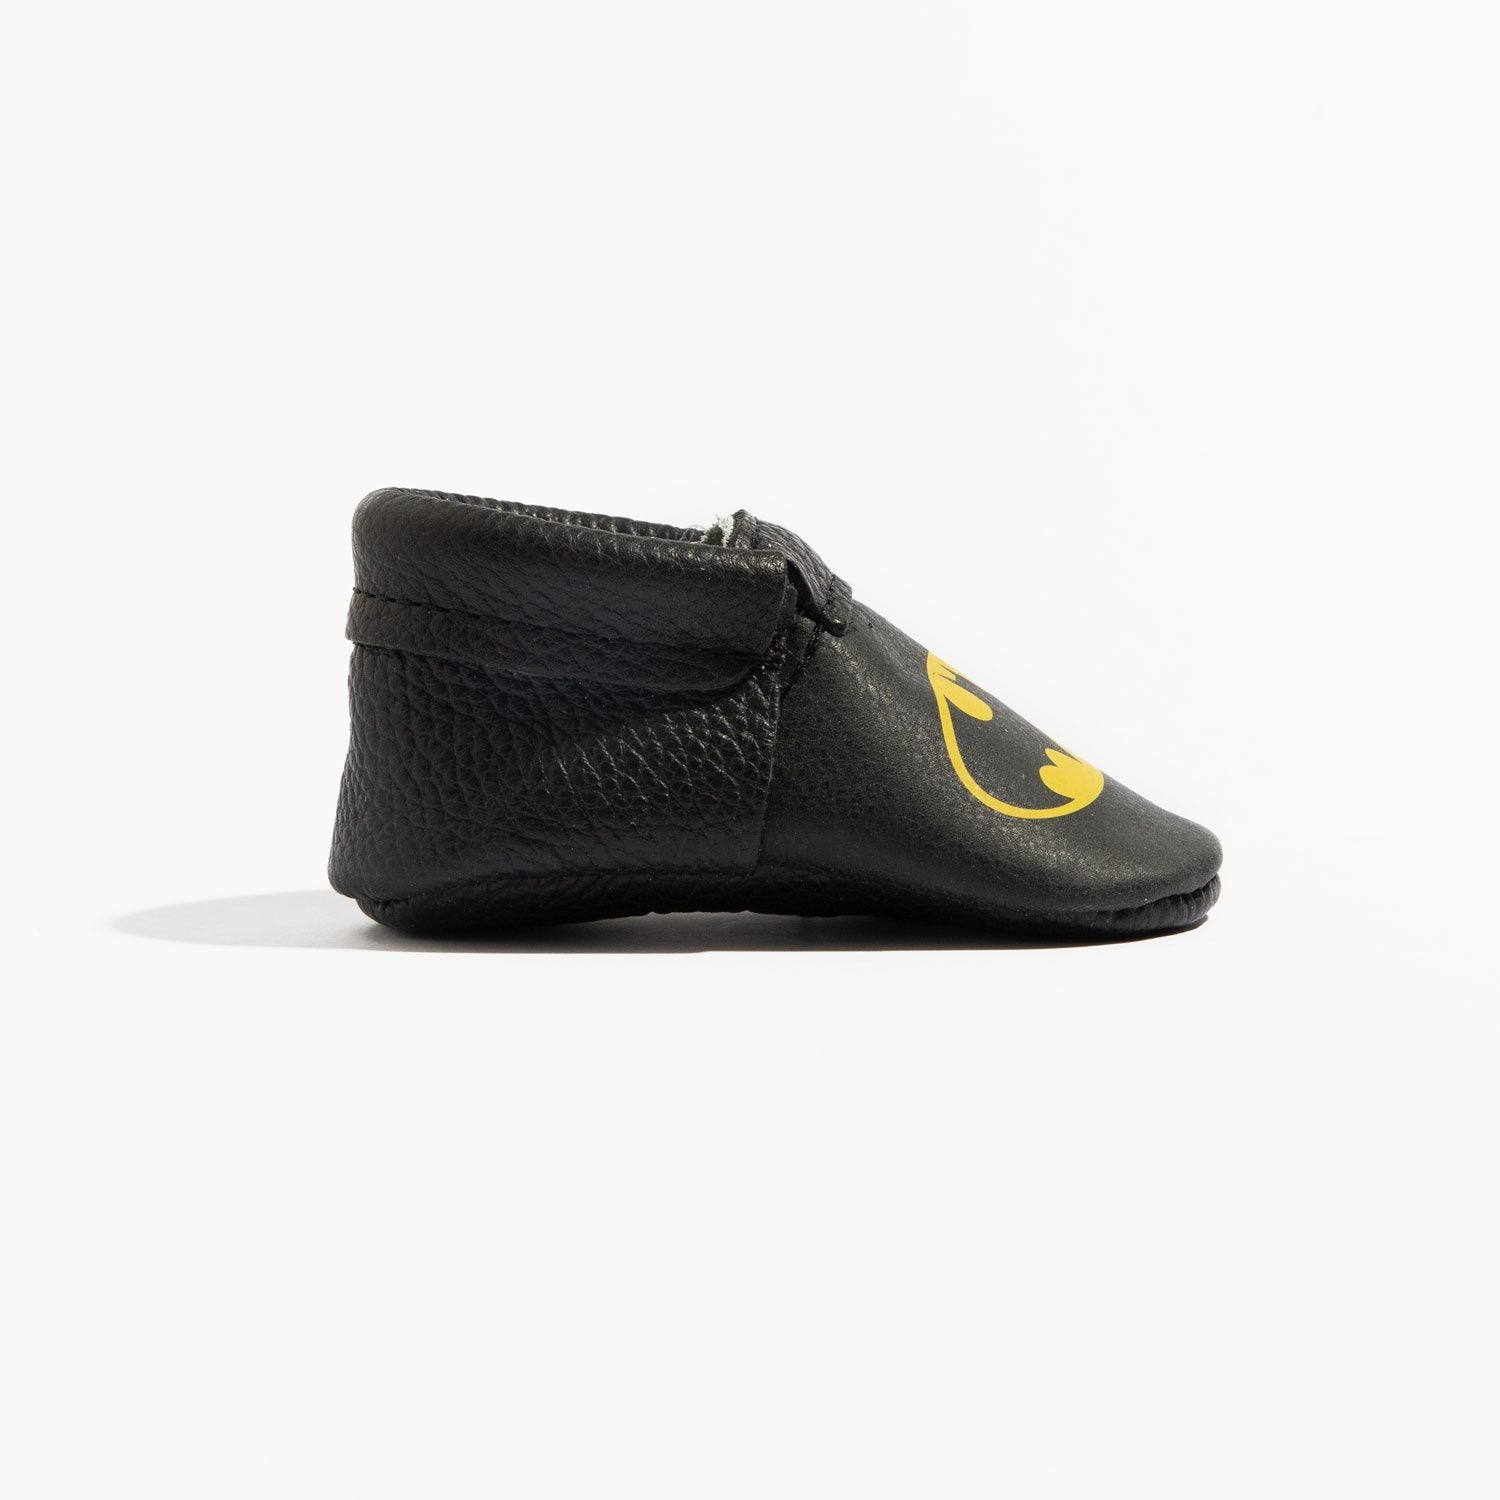 Batman City Mocc City Moccs Soft Soles